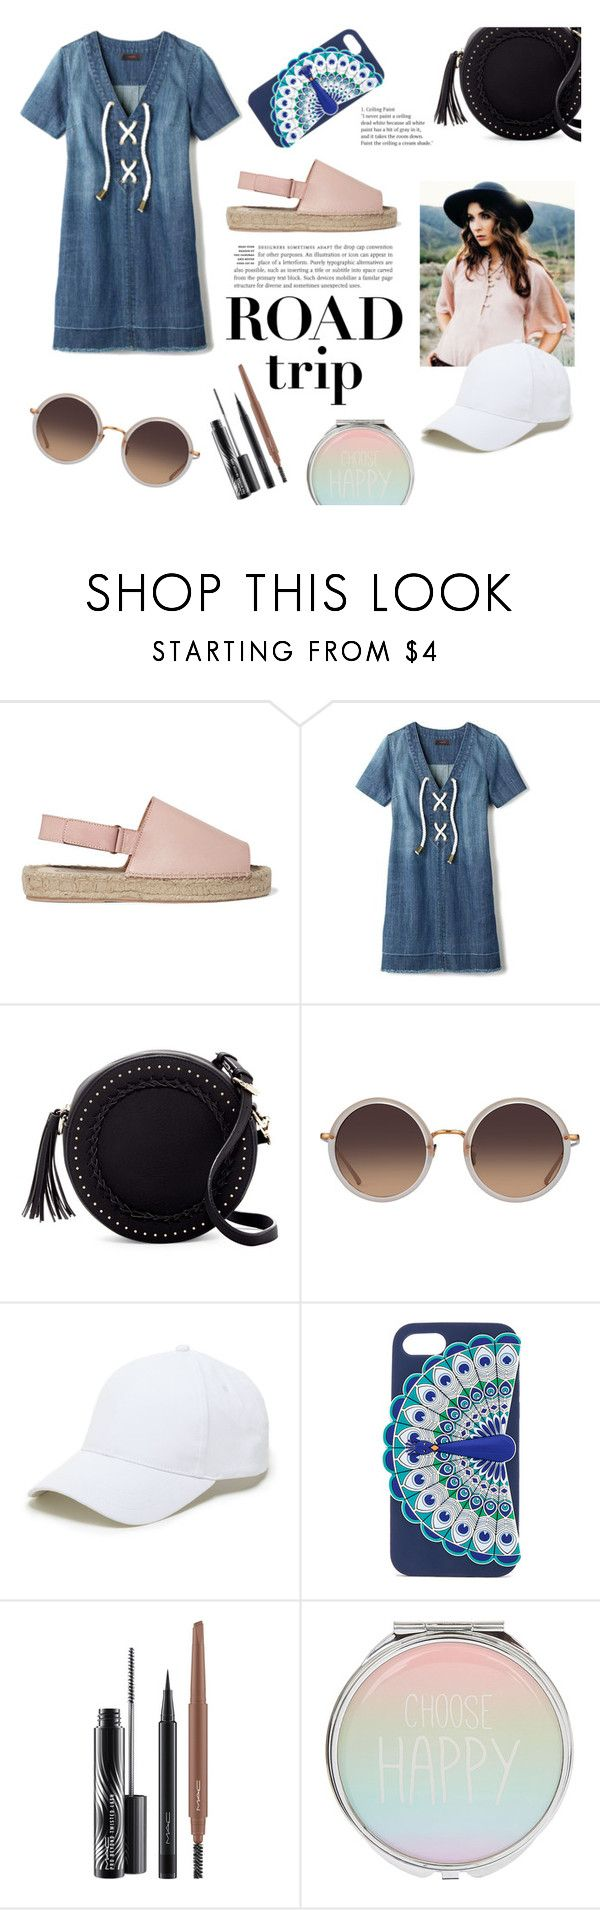 """Rev It Up: Road Trip Style"" by spencer-hastings-5 on Polyvore featuring moda, 8, Avon, Urban Expressions, Linda Farrow, Sole Society, Kate Spade, MAC Cosmetics i roadtrip"